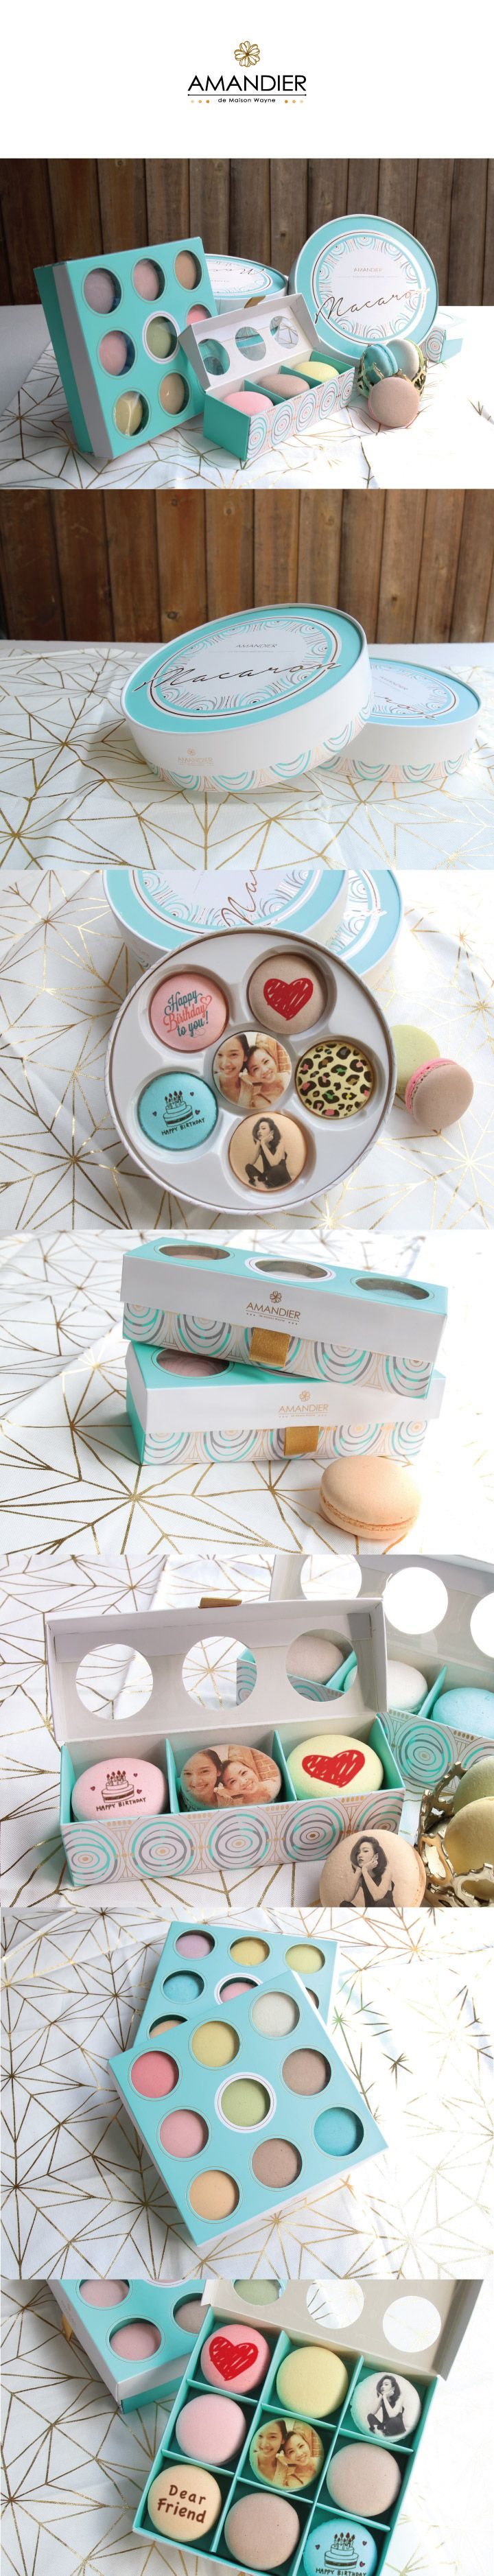 AMANDIER's Macaron packaging #macaron#packaging#design#packagingDesign